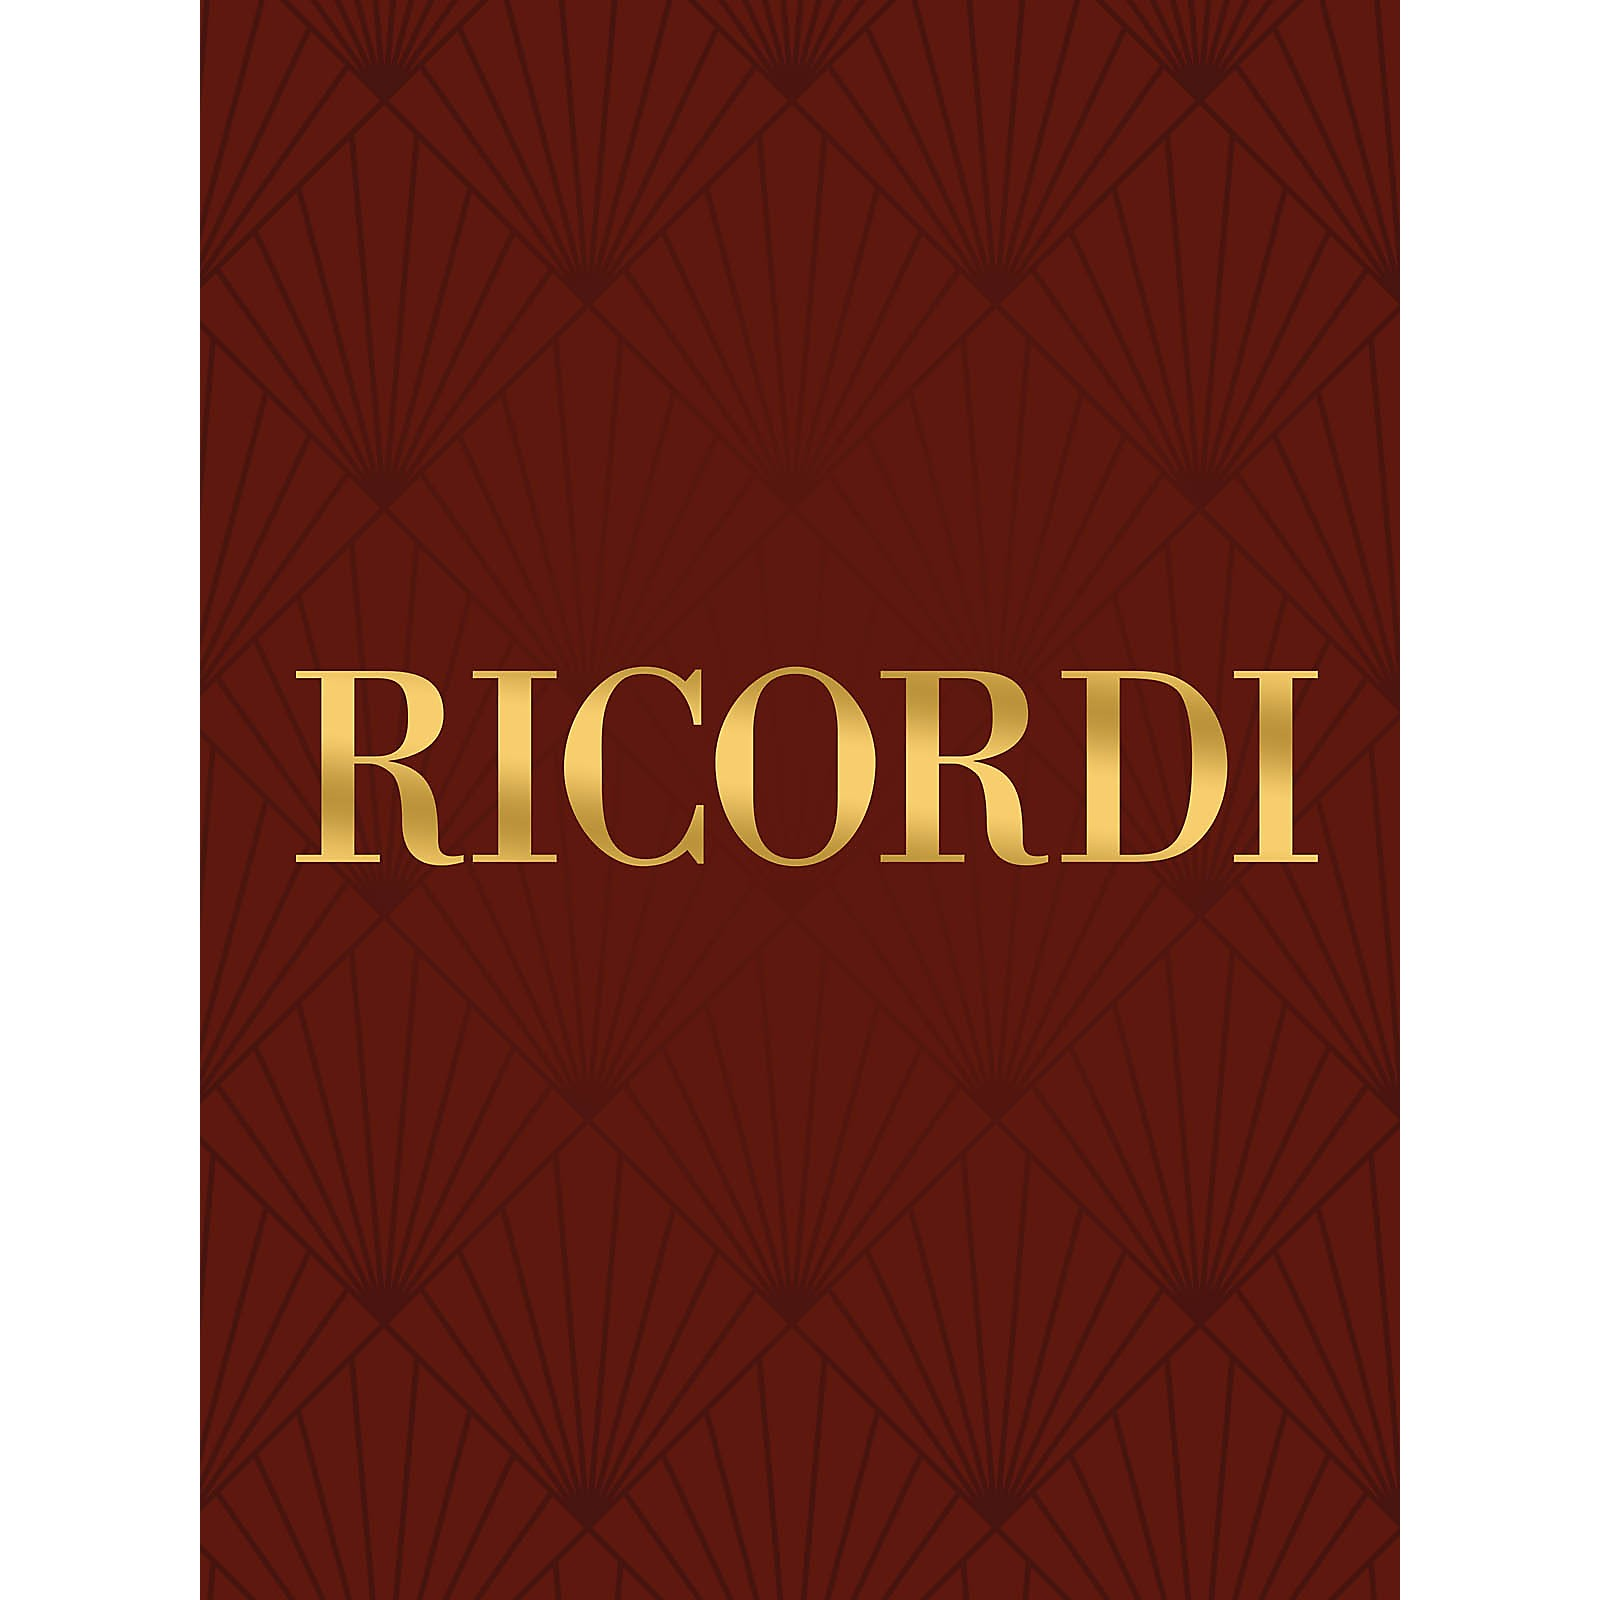 Ricordi Conc in E Flat Woodwind Solo Series by Vincenzo Bellini Edited by Henrich Leskó